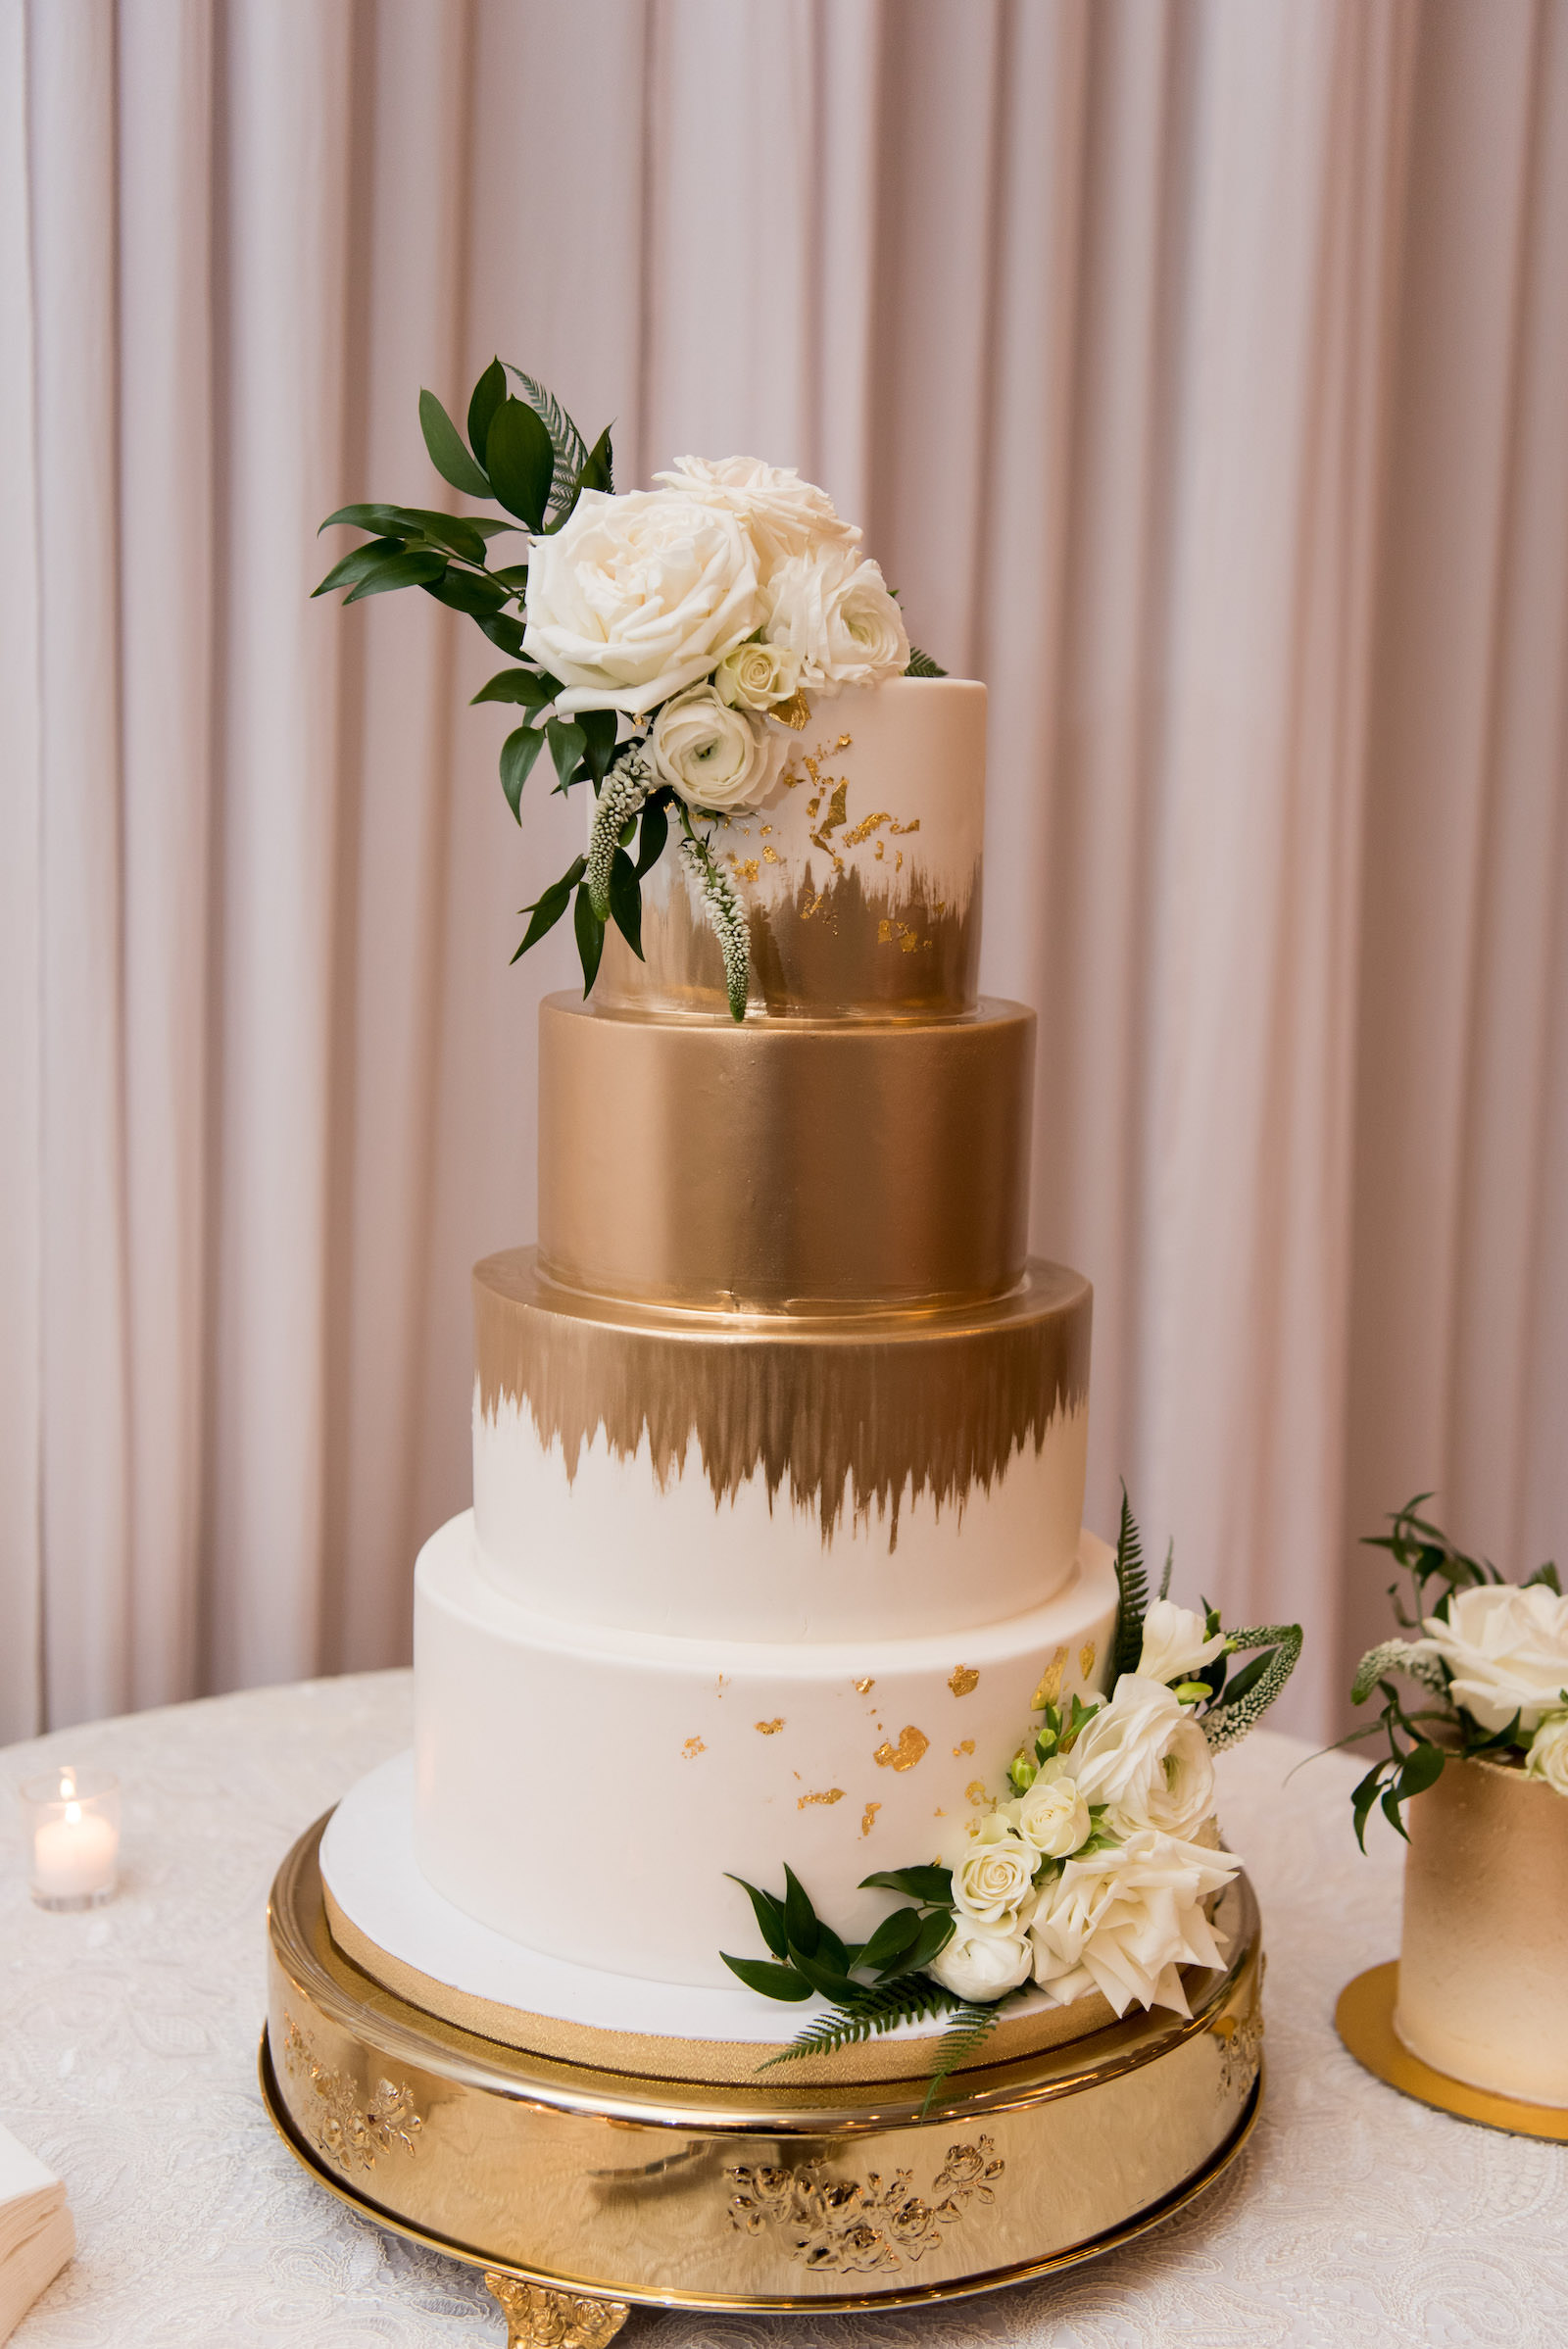 Elegant Classic White and Gold Painted Four Tier Wedding Cake with White Roses | Tampa Bay Wedding Baker The Artistic Whisk | Wedding Florist Bruce Wayne Florals | Tampa Bay Wedding Planner Parties A'la Carte